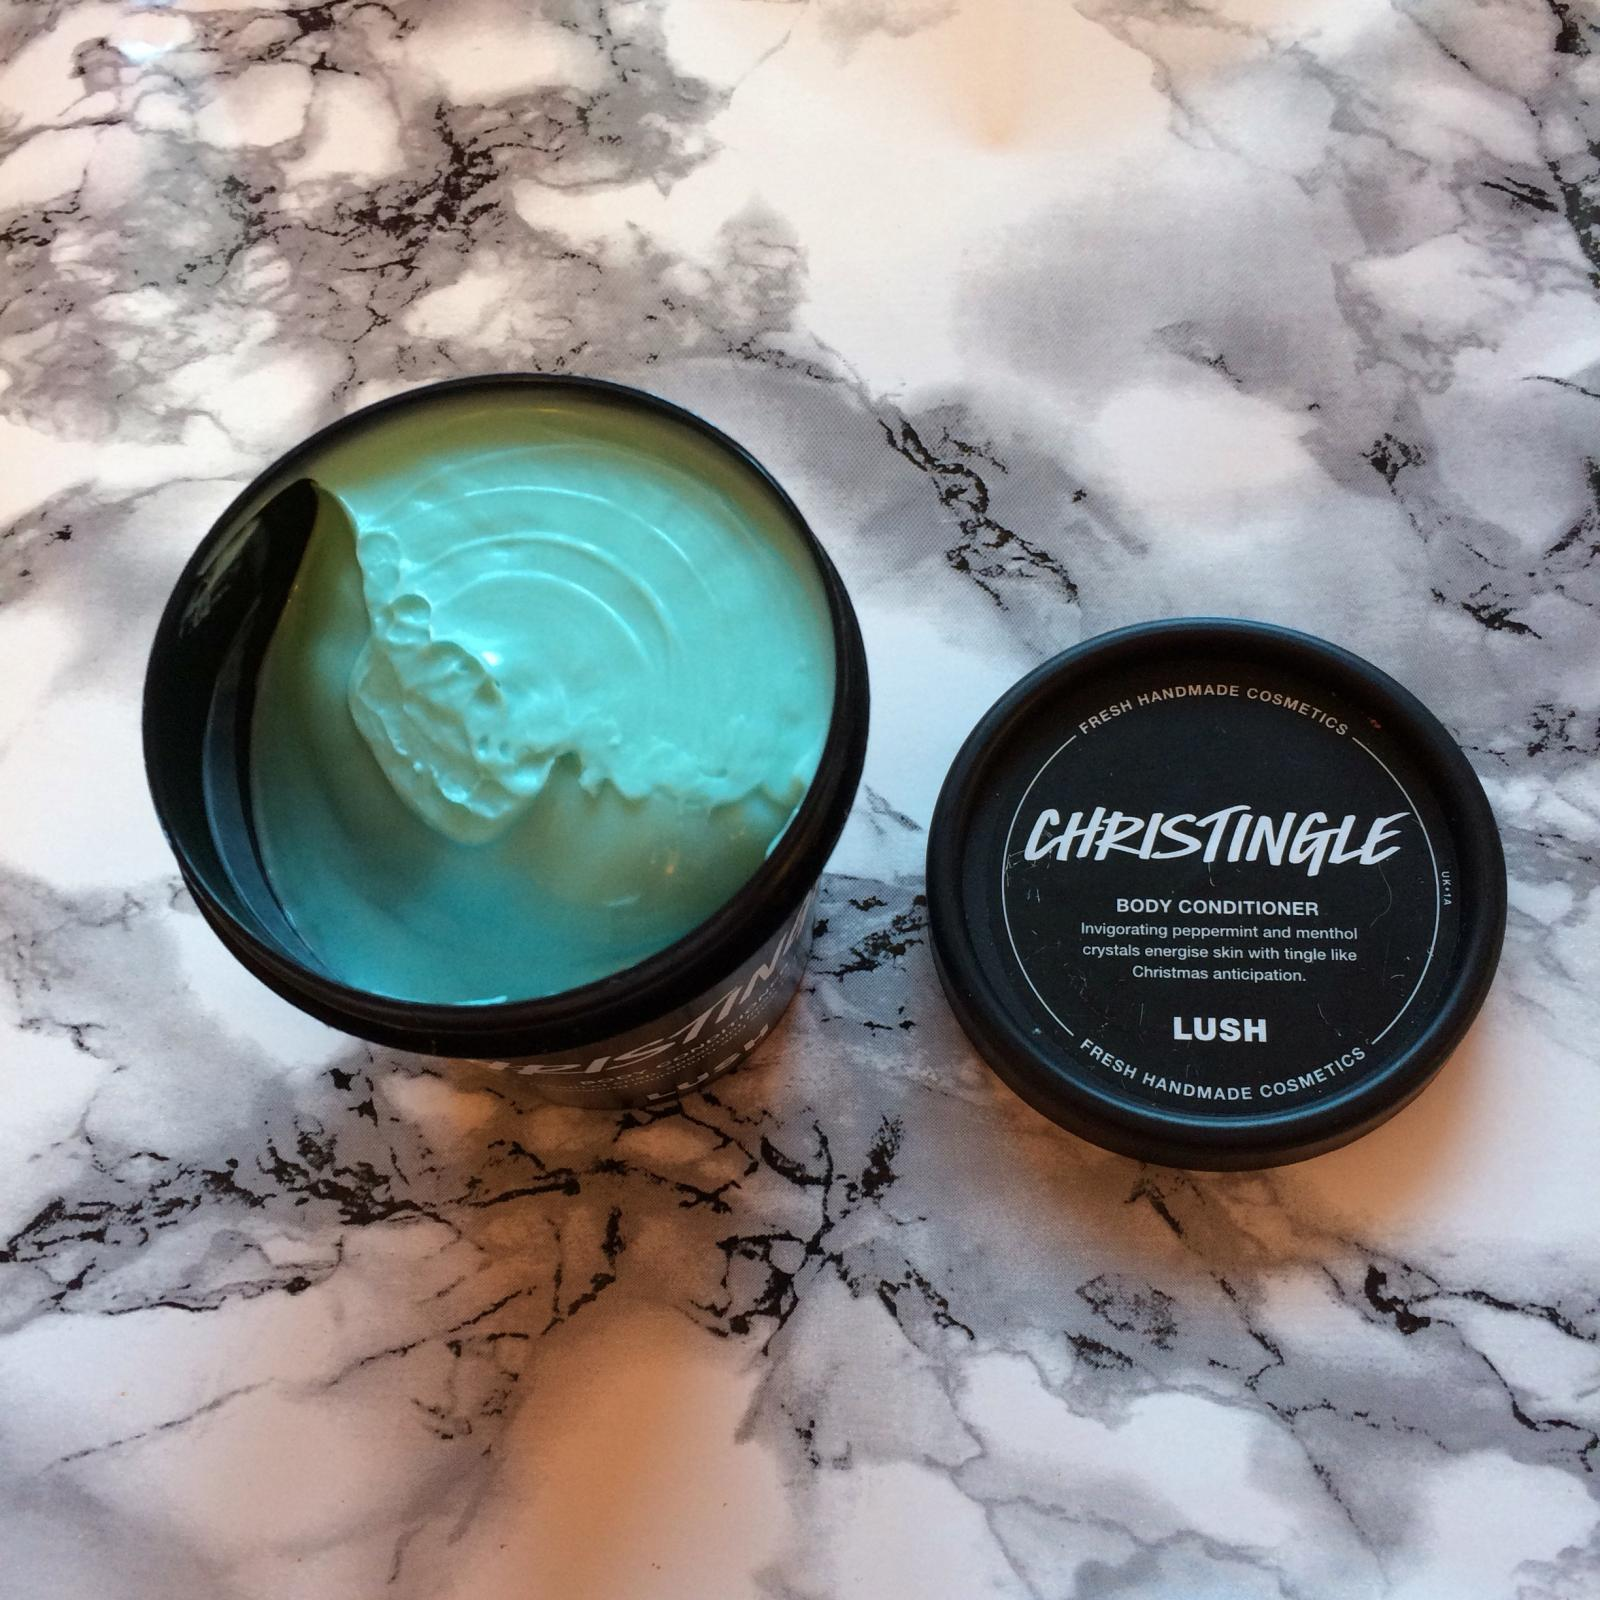 LUSH Christmas Christingle Body Conditioner Review